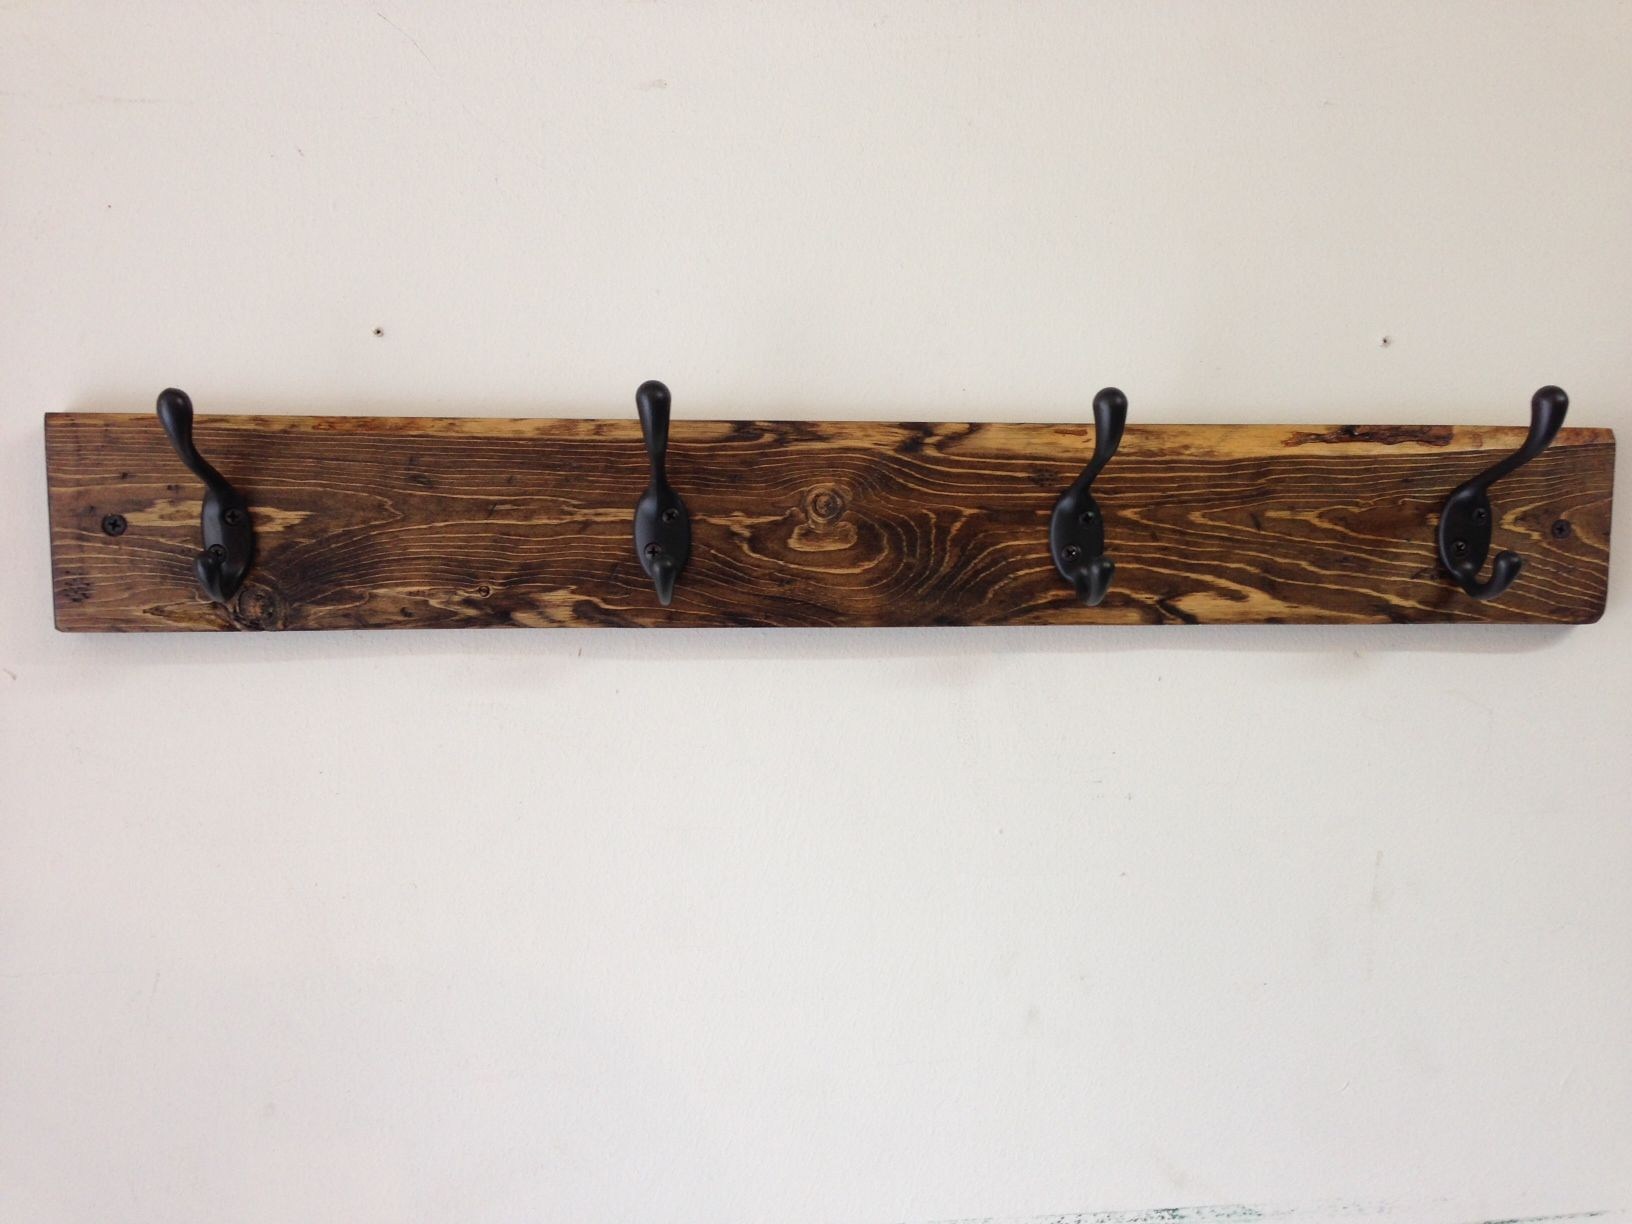 Handmade Rustic Distressed Coat Hook Rack With 4 Hooks Made From